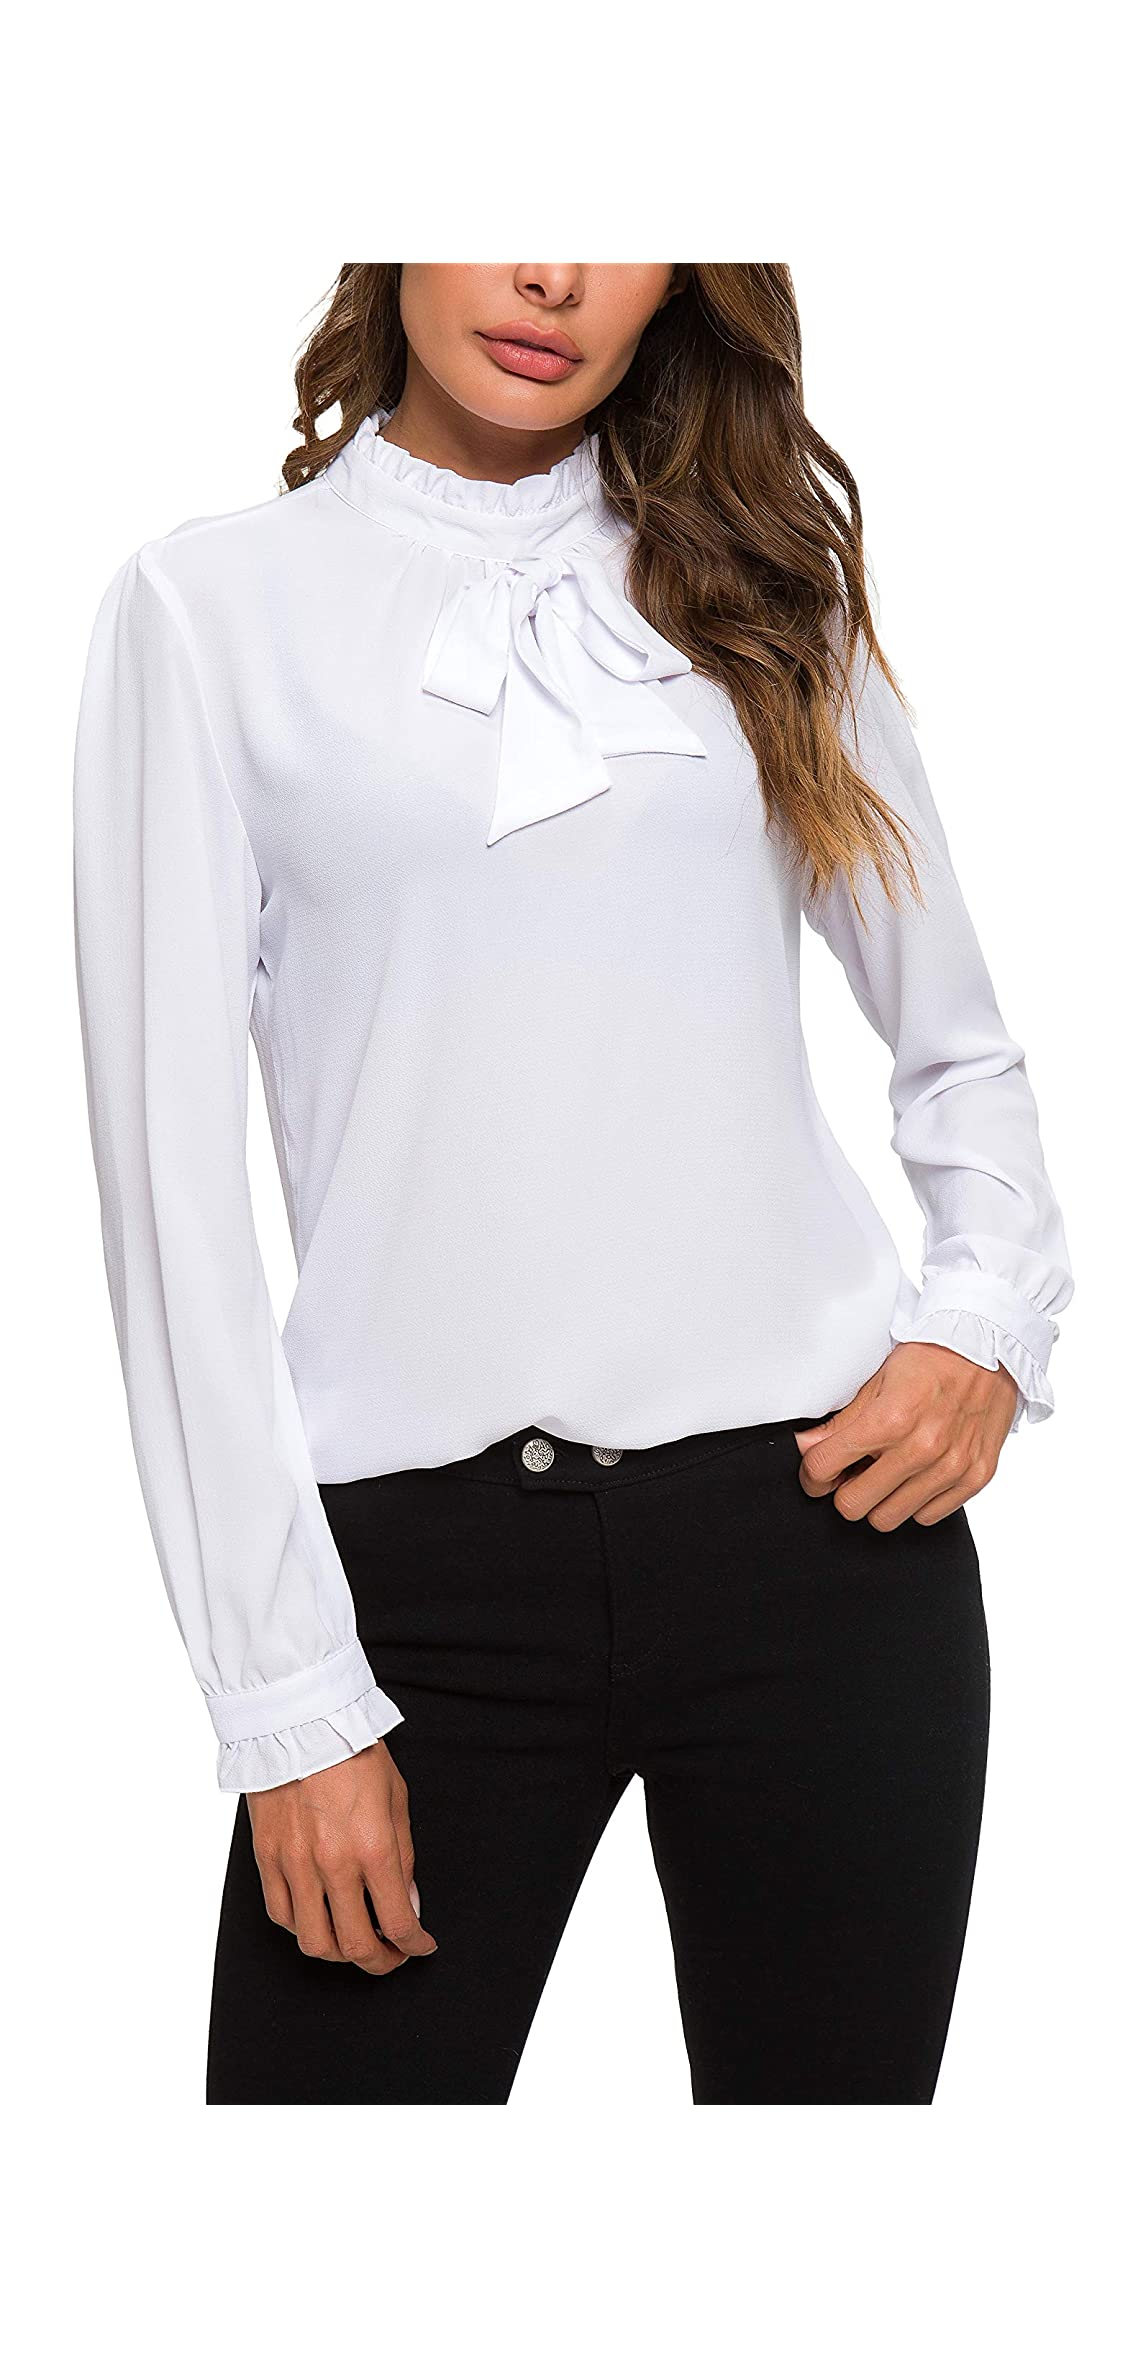 Womens Bow Tie Neck Long/short Sleeve Blouse Office Work